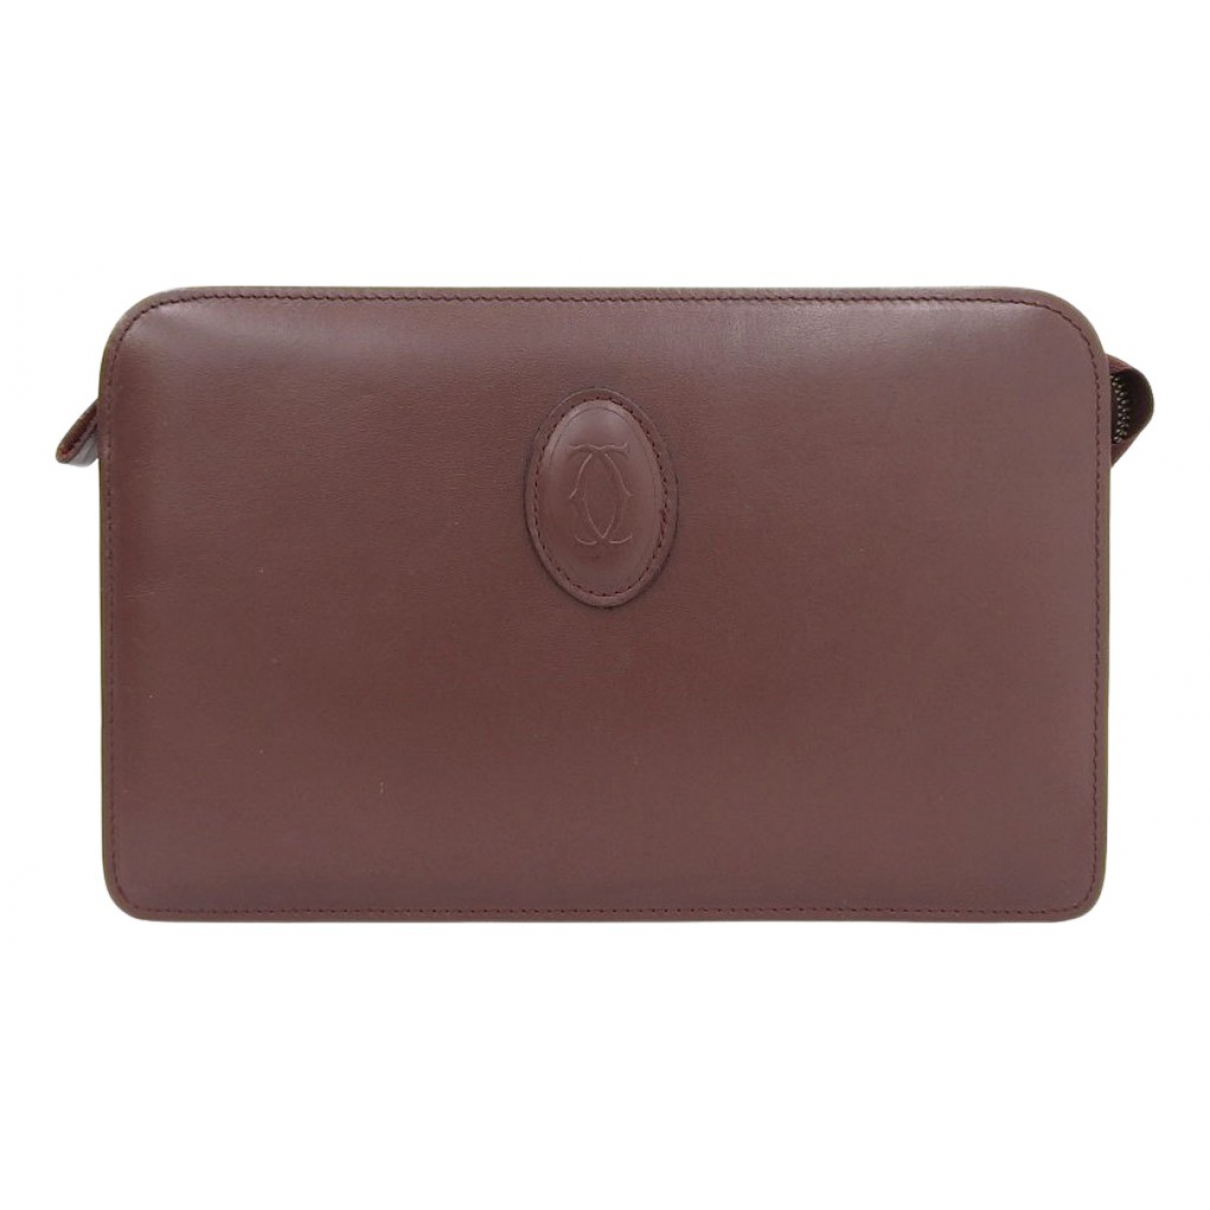 Cartier N Brown Leather Clutch bag for Women N